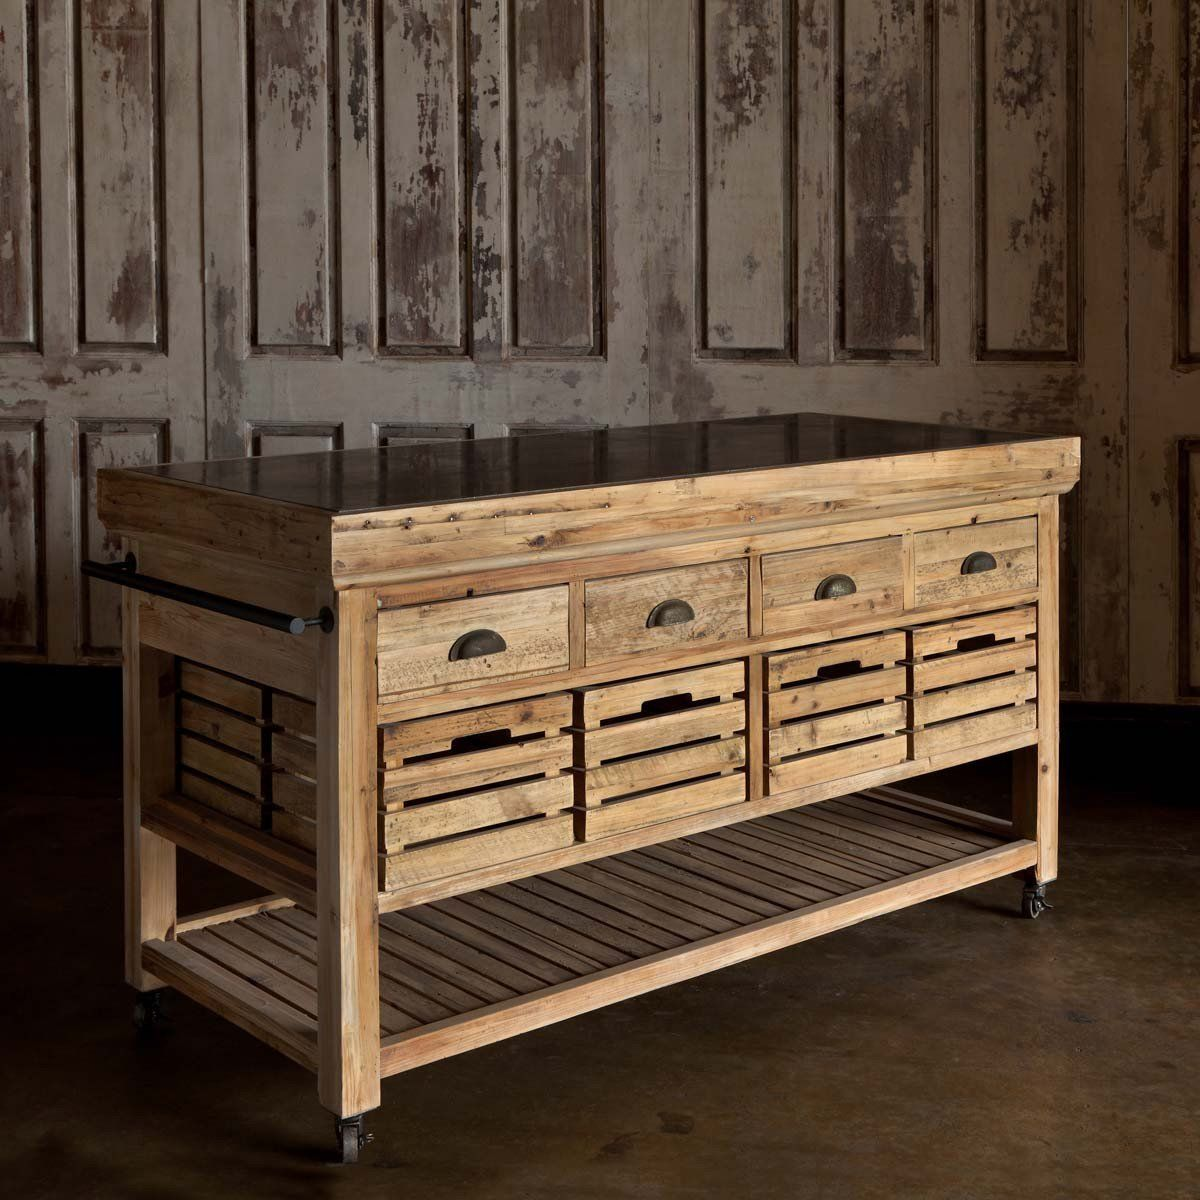 Farmhouse Style Wood and Stone Top Kitchen Island